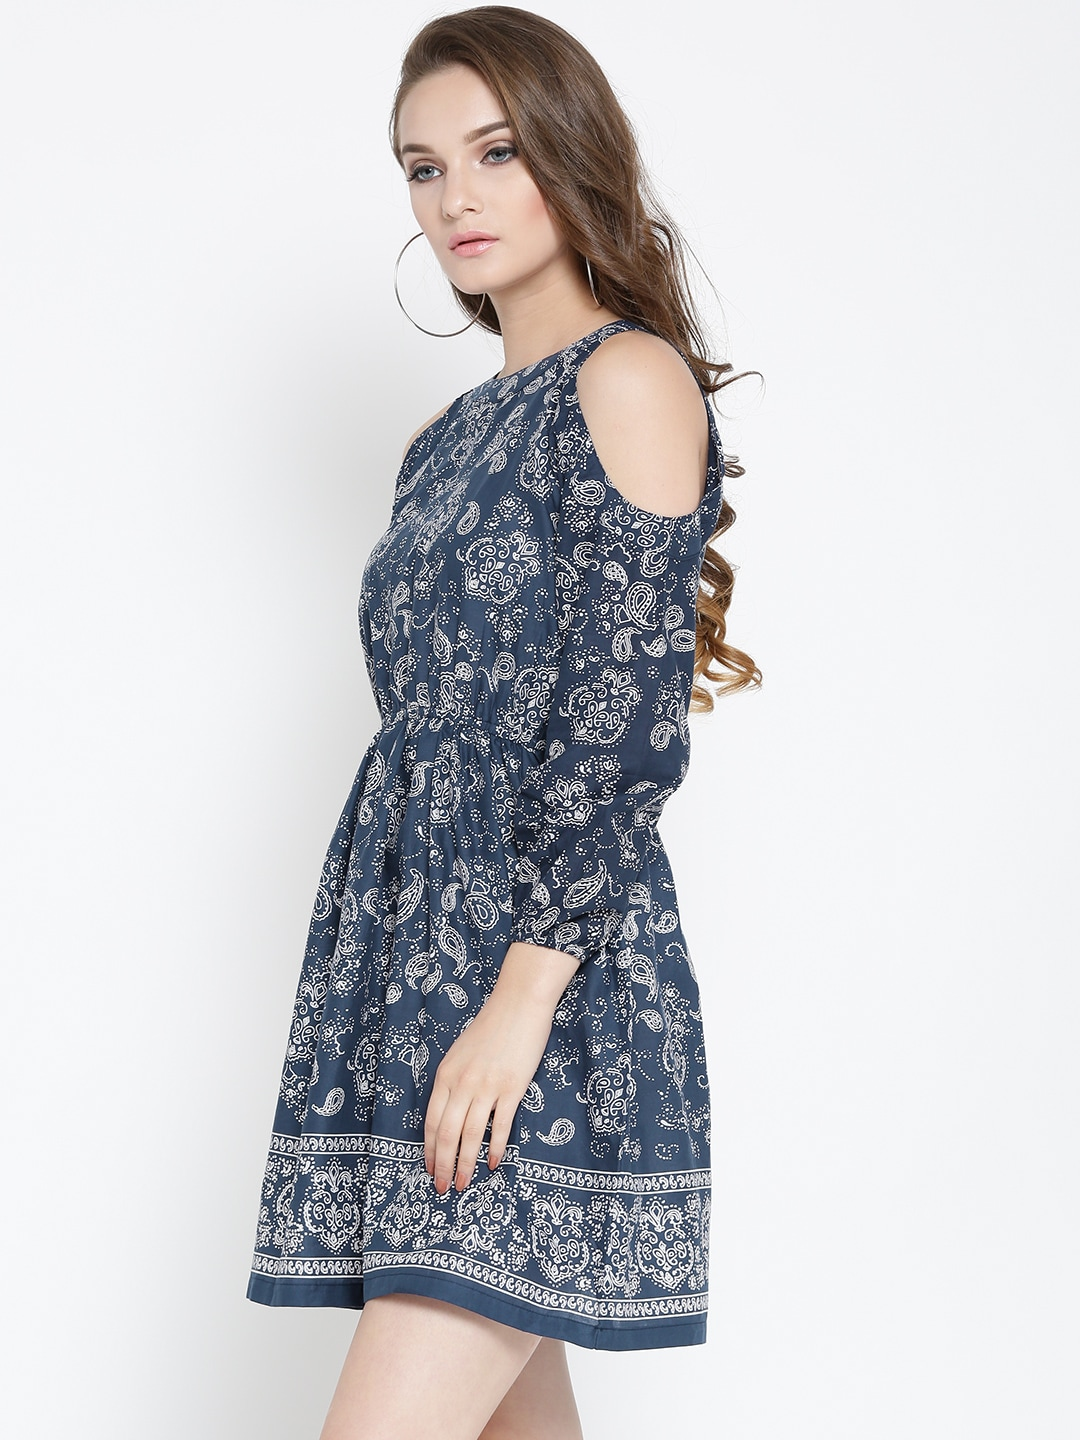 One Piece Dress - Buy One Piece Dresses for Women Online in India